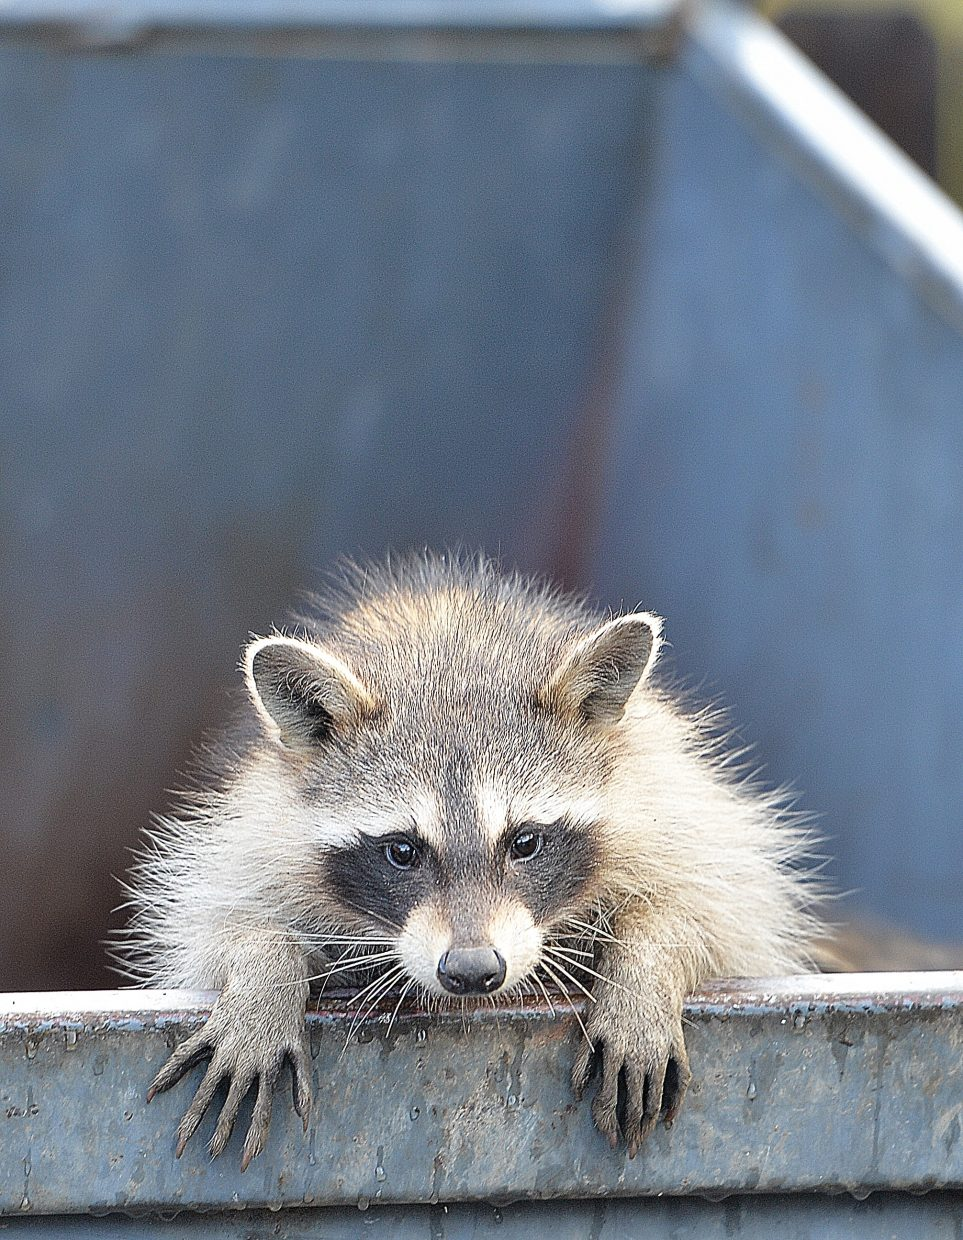 A racoon looks to make his escape from a dumpster Tuesday morning in downtown Steamboat Springs. The employees of a nearby business were kind enough to place a board in the dumpster so the animals could make it out.